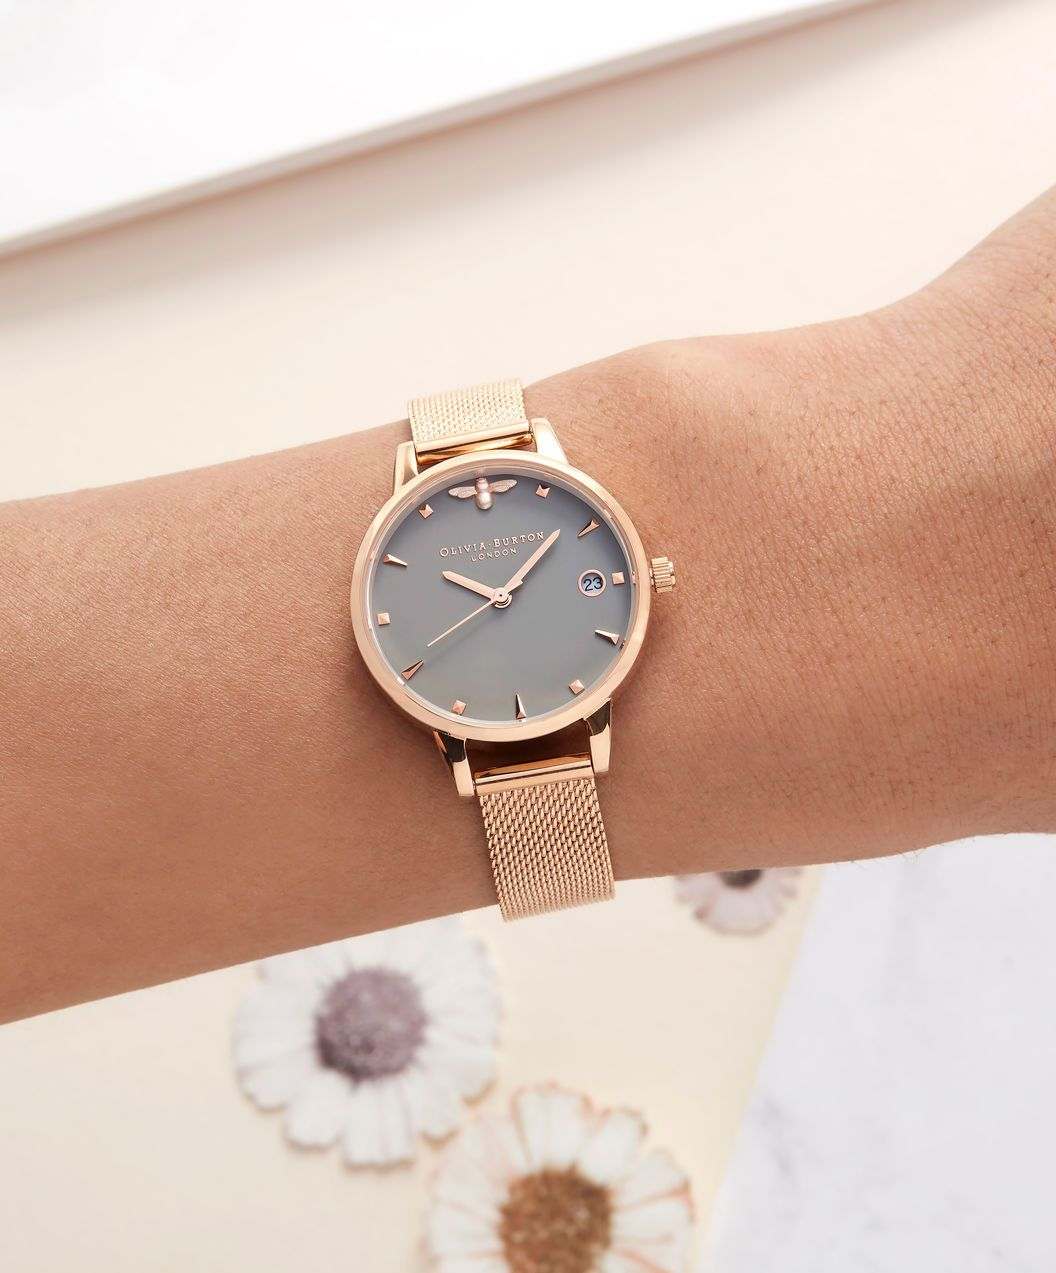 OLIVIA BURTON LONDON Queen Bee Rose Gold Mesh Watch OB16AM122 – Midi Dial  Round in White and Rose Gold - Other view f3bdfc2fee